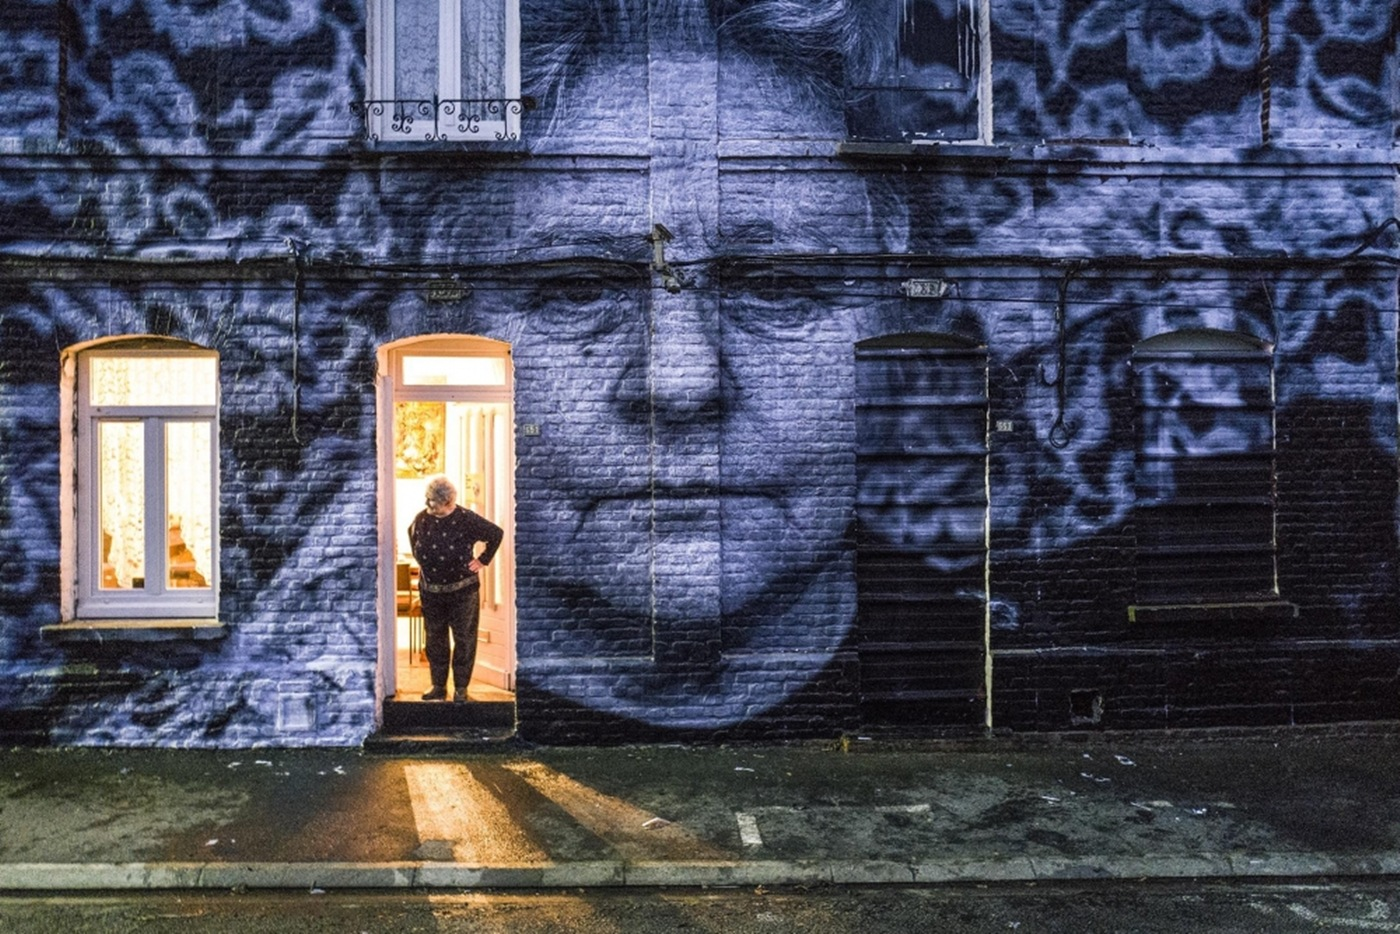 Visages Villages, il documentario di Agnes Varda e Jr in gara per un Oscar | Collater.al 6